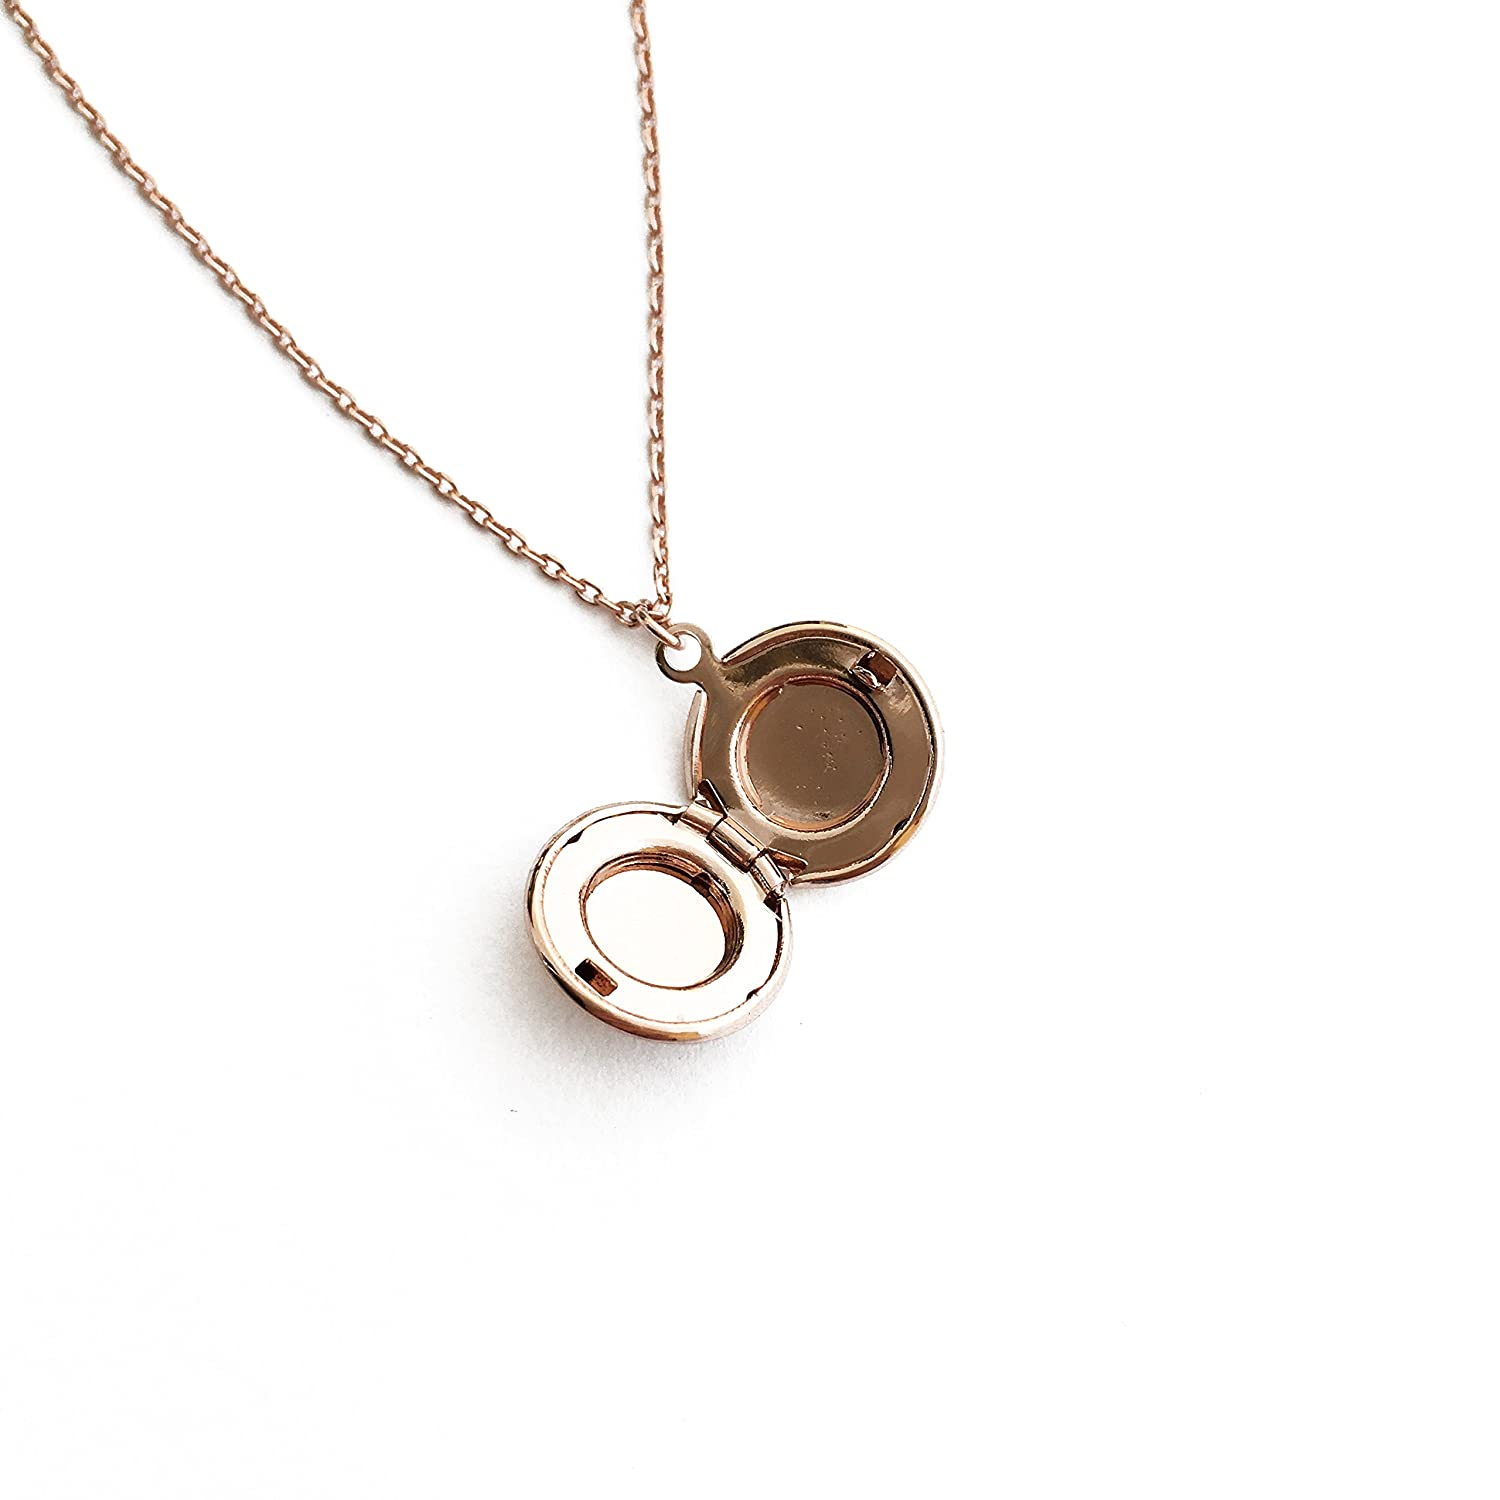 Minimalist or Silver Rose Gold HONEYCAT Keepsake Locket Necklace in Gold Delicate Jewelry